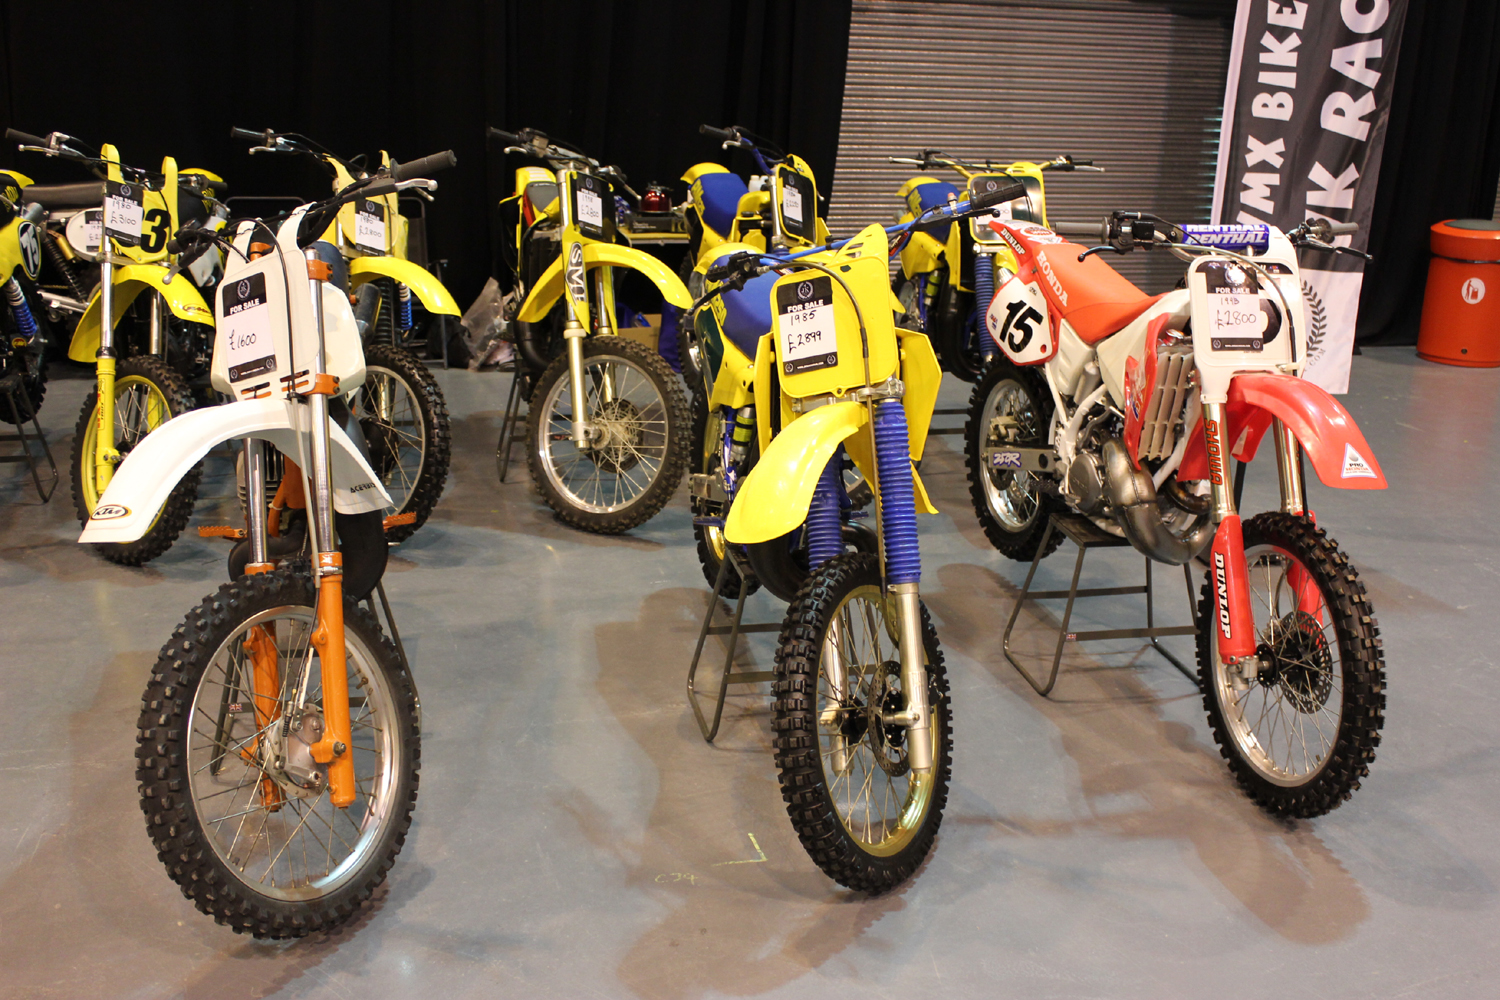 classicdirtbikerider.com-photo by Mr J-2015 Telford classic dirt bike show-5